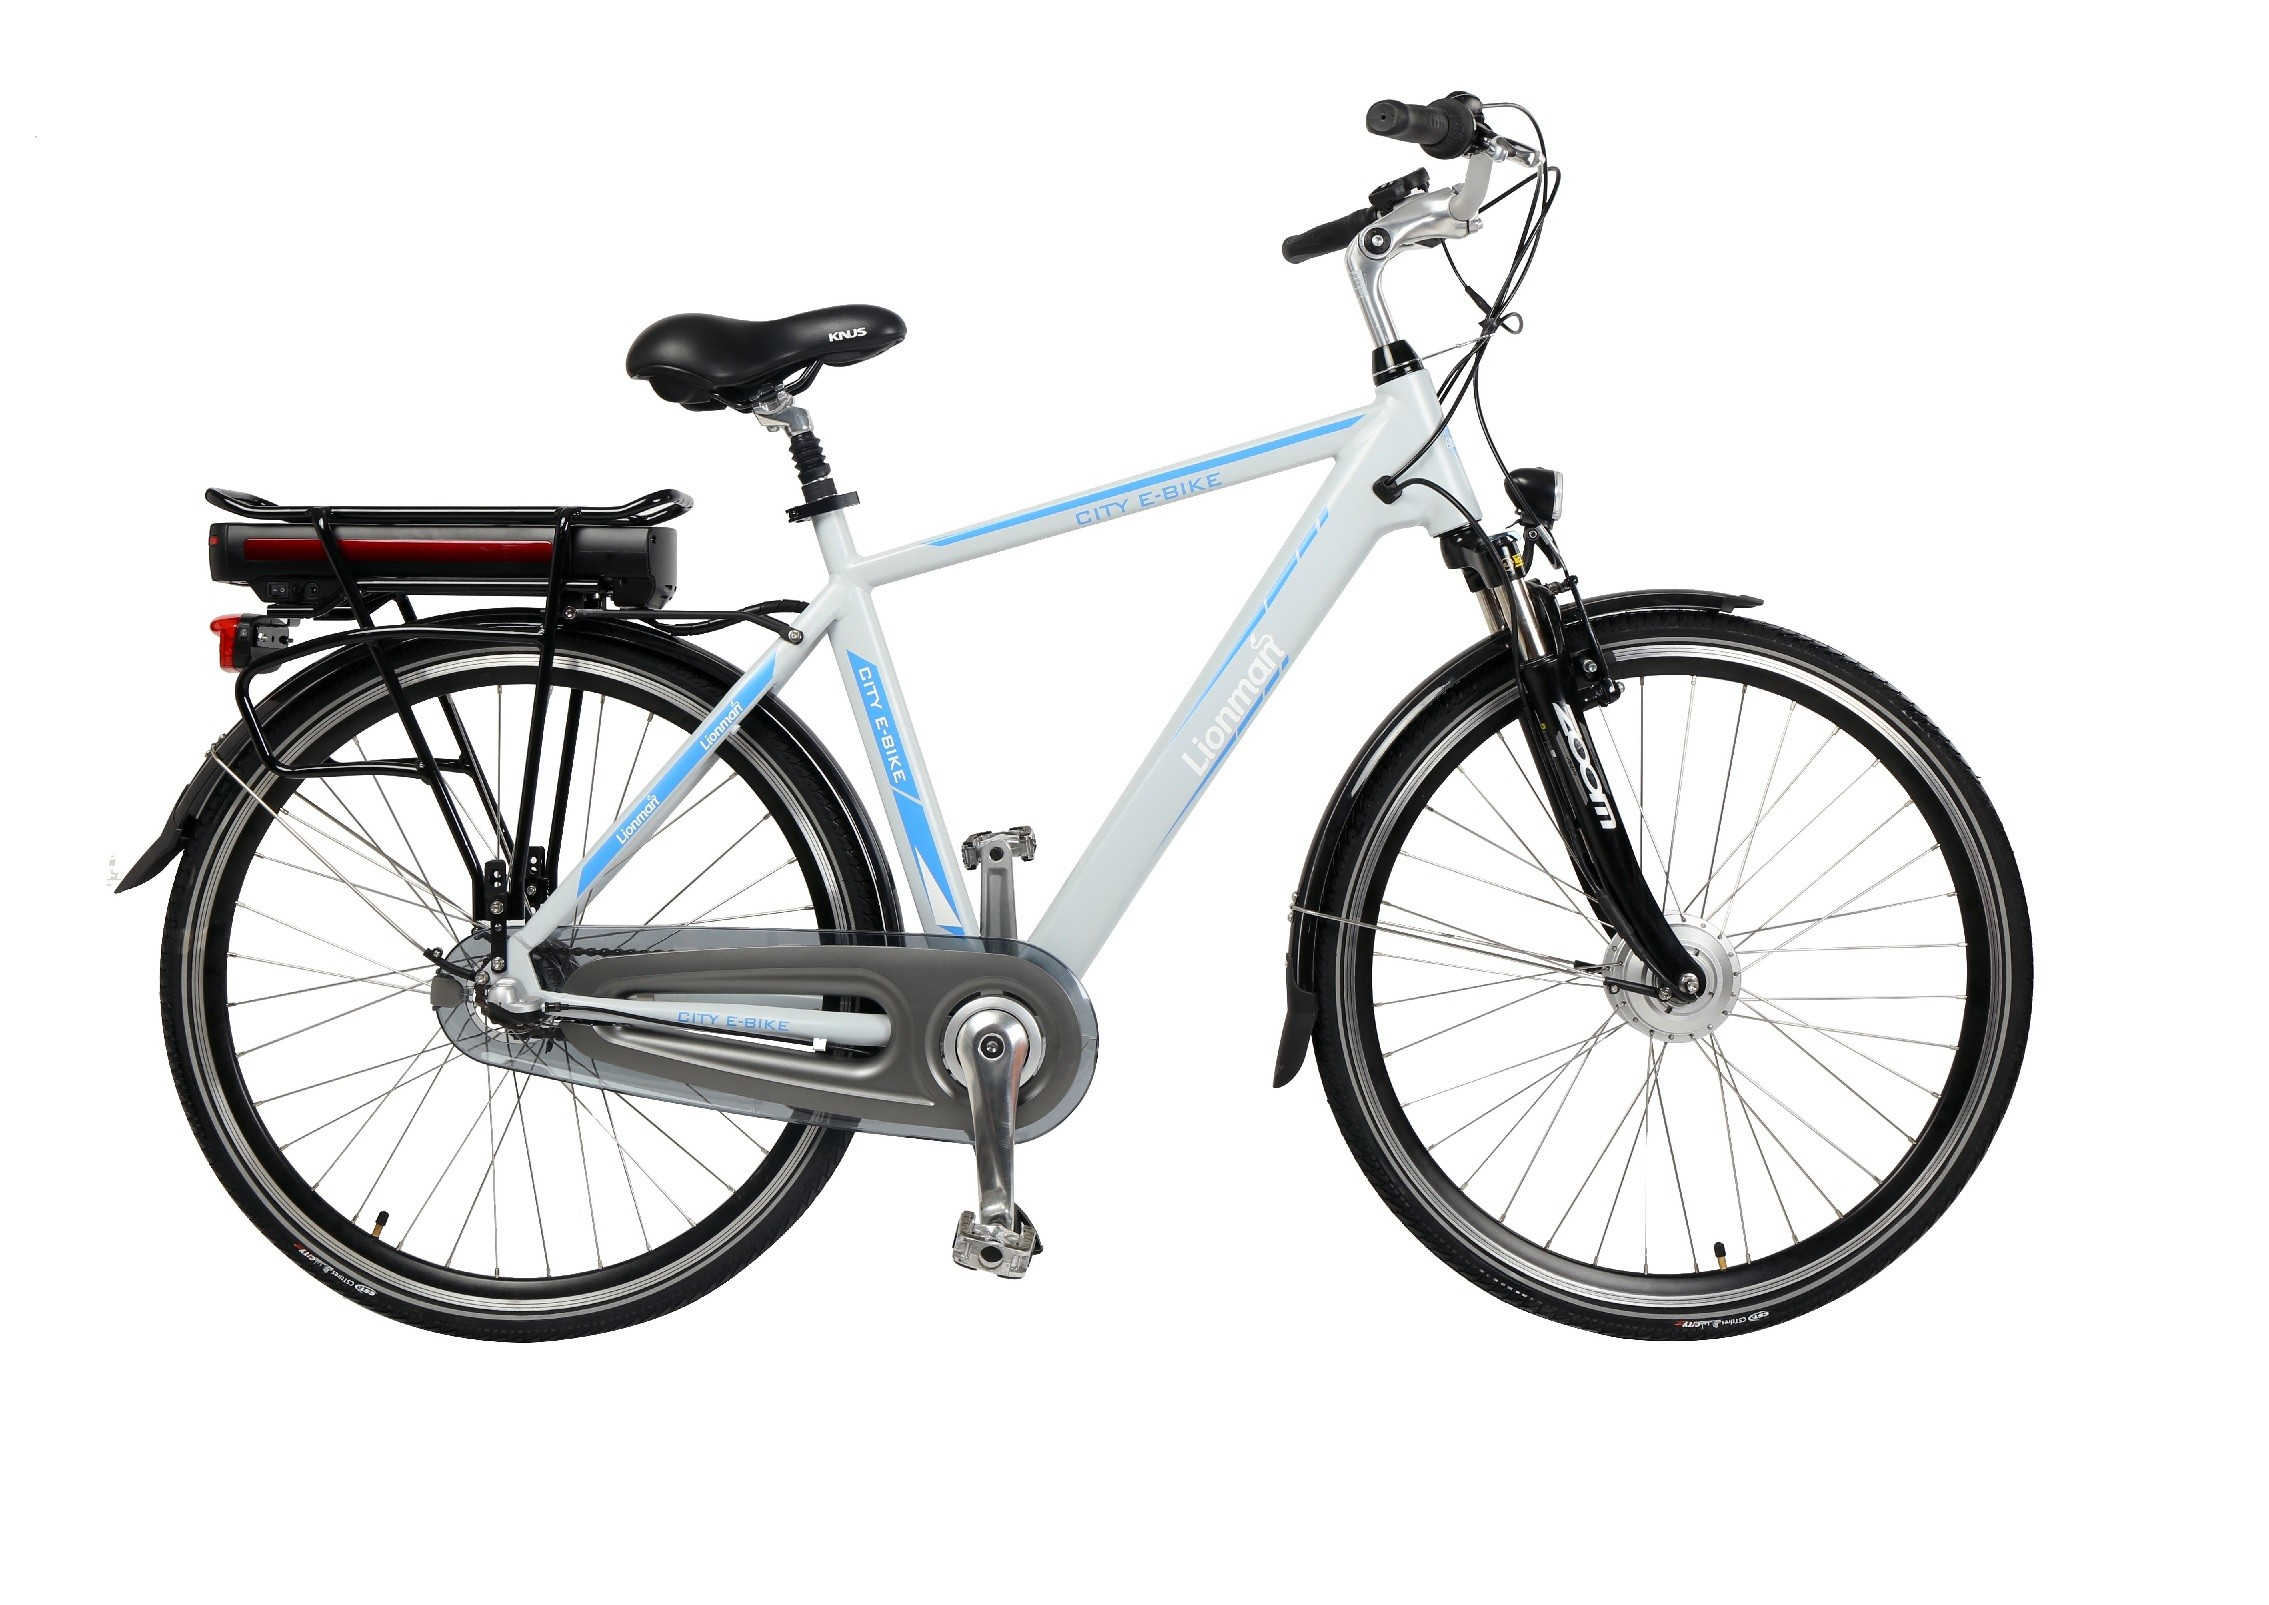 "HC86EB05 - Electric Bicycle Aluminium Frame 28"", Easy Ride -Man"